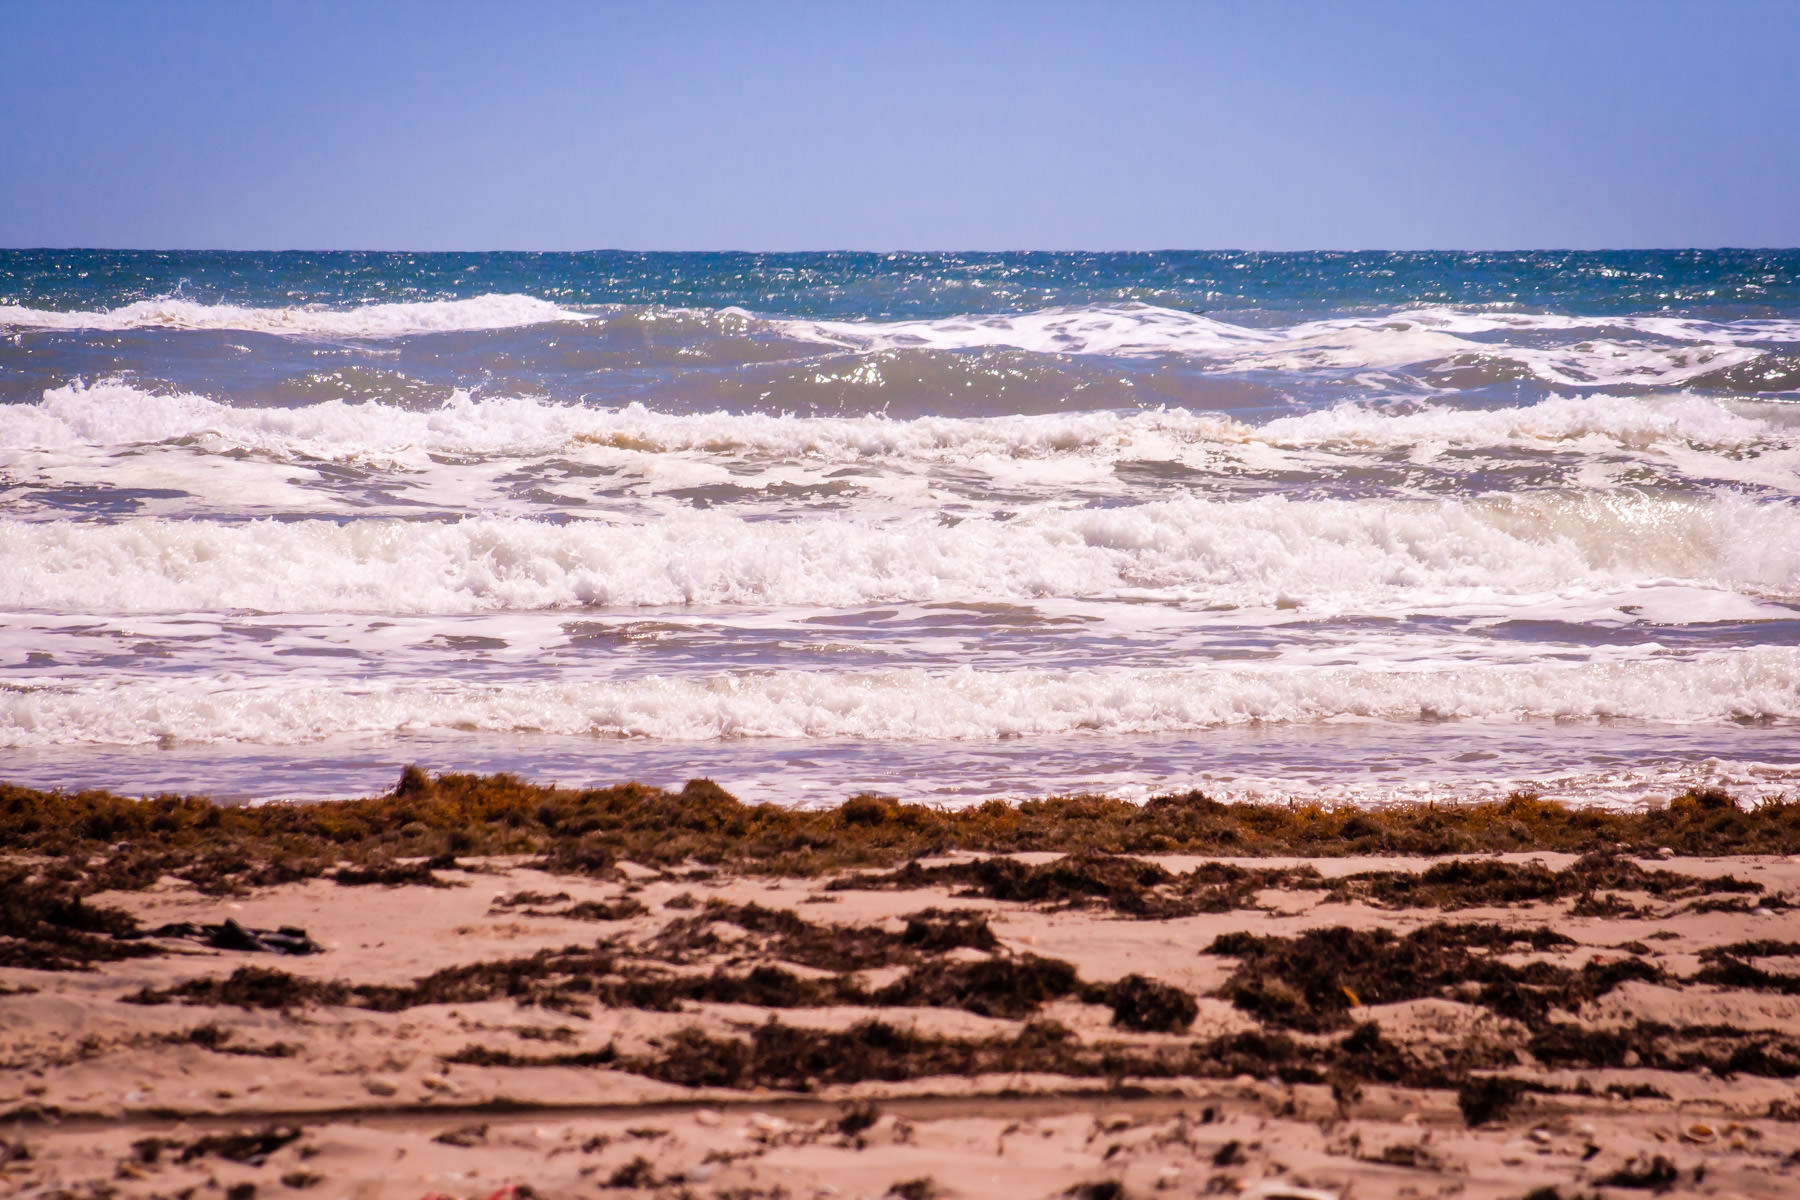 Sargassum, washed ashore annually during April and May, dries on the beach at South Padre Island, Texas.